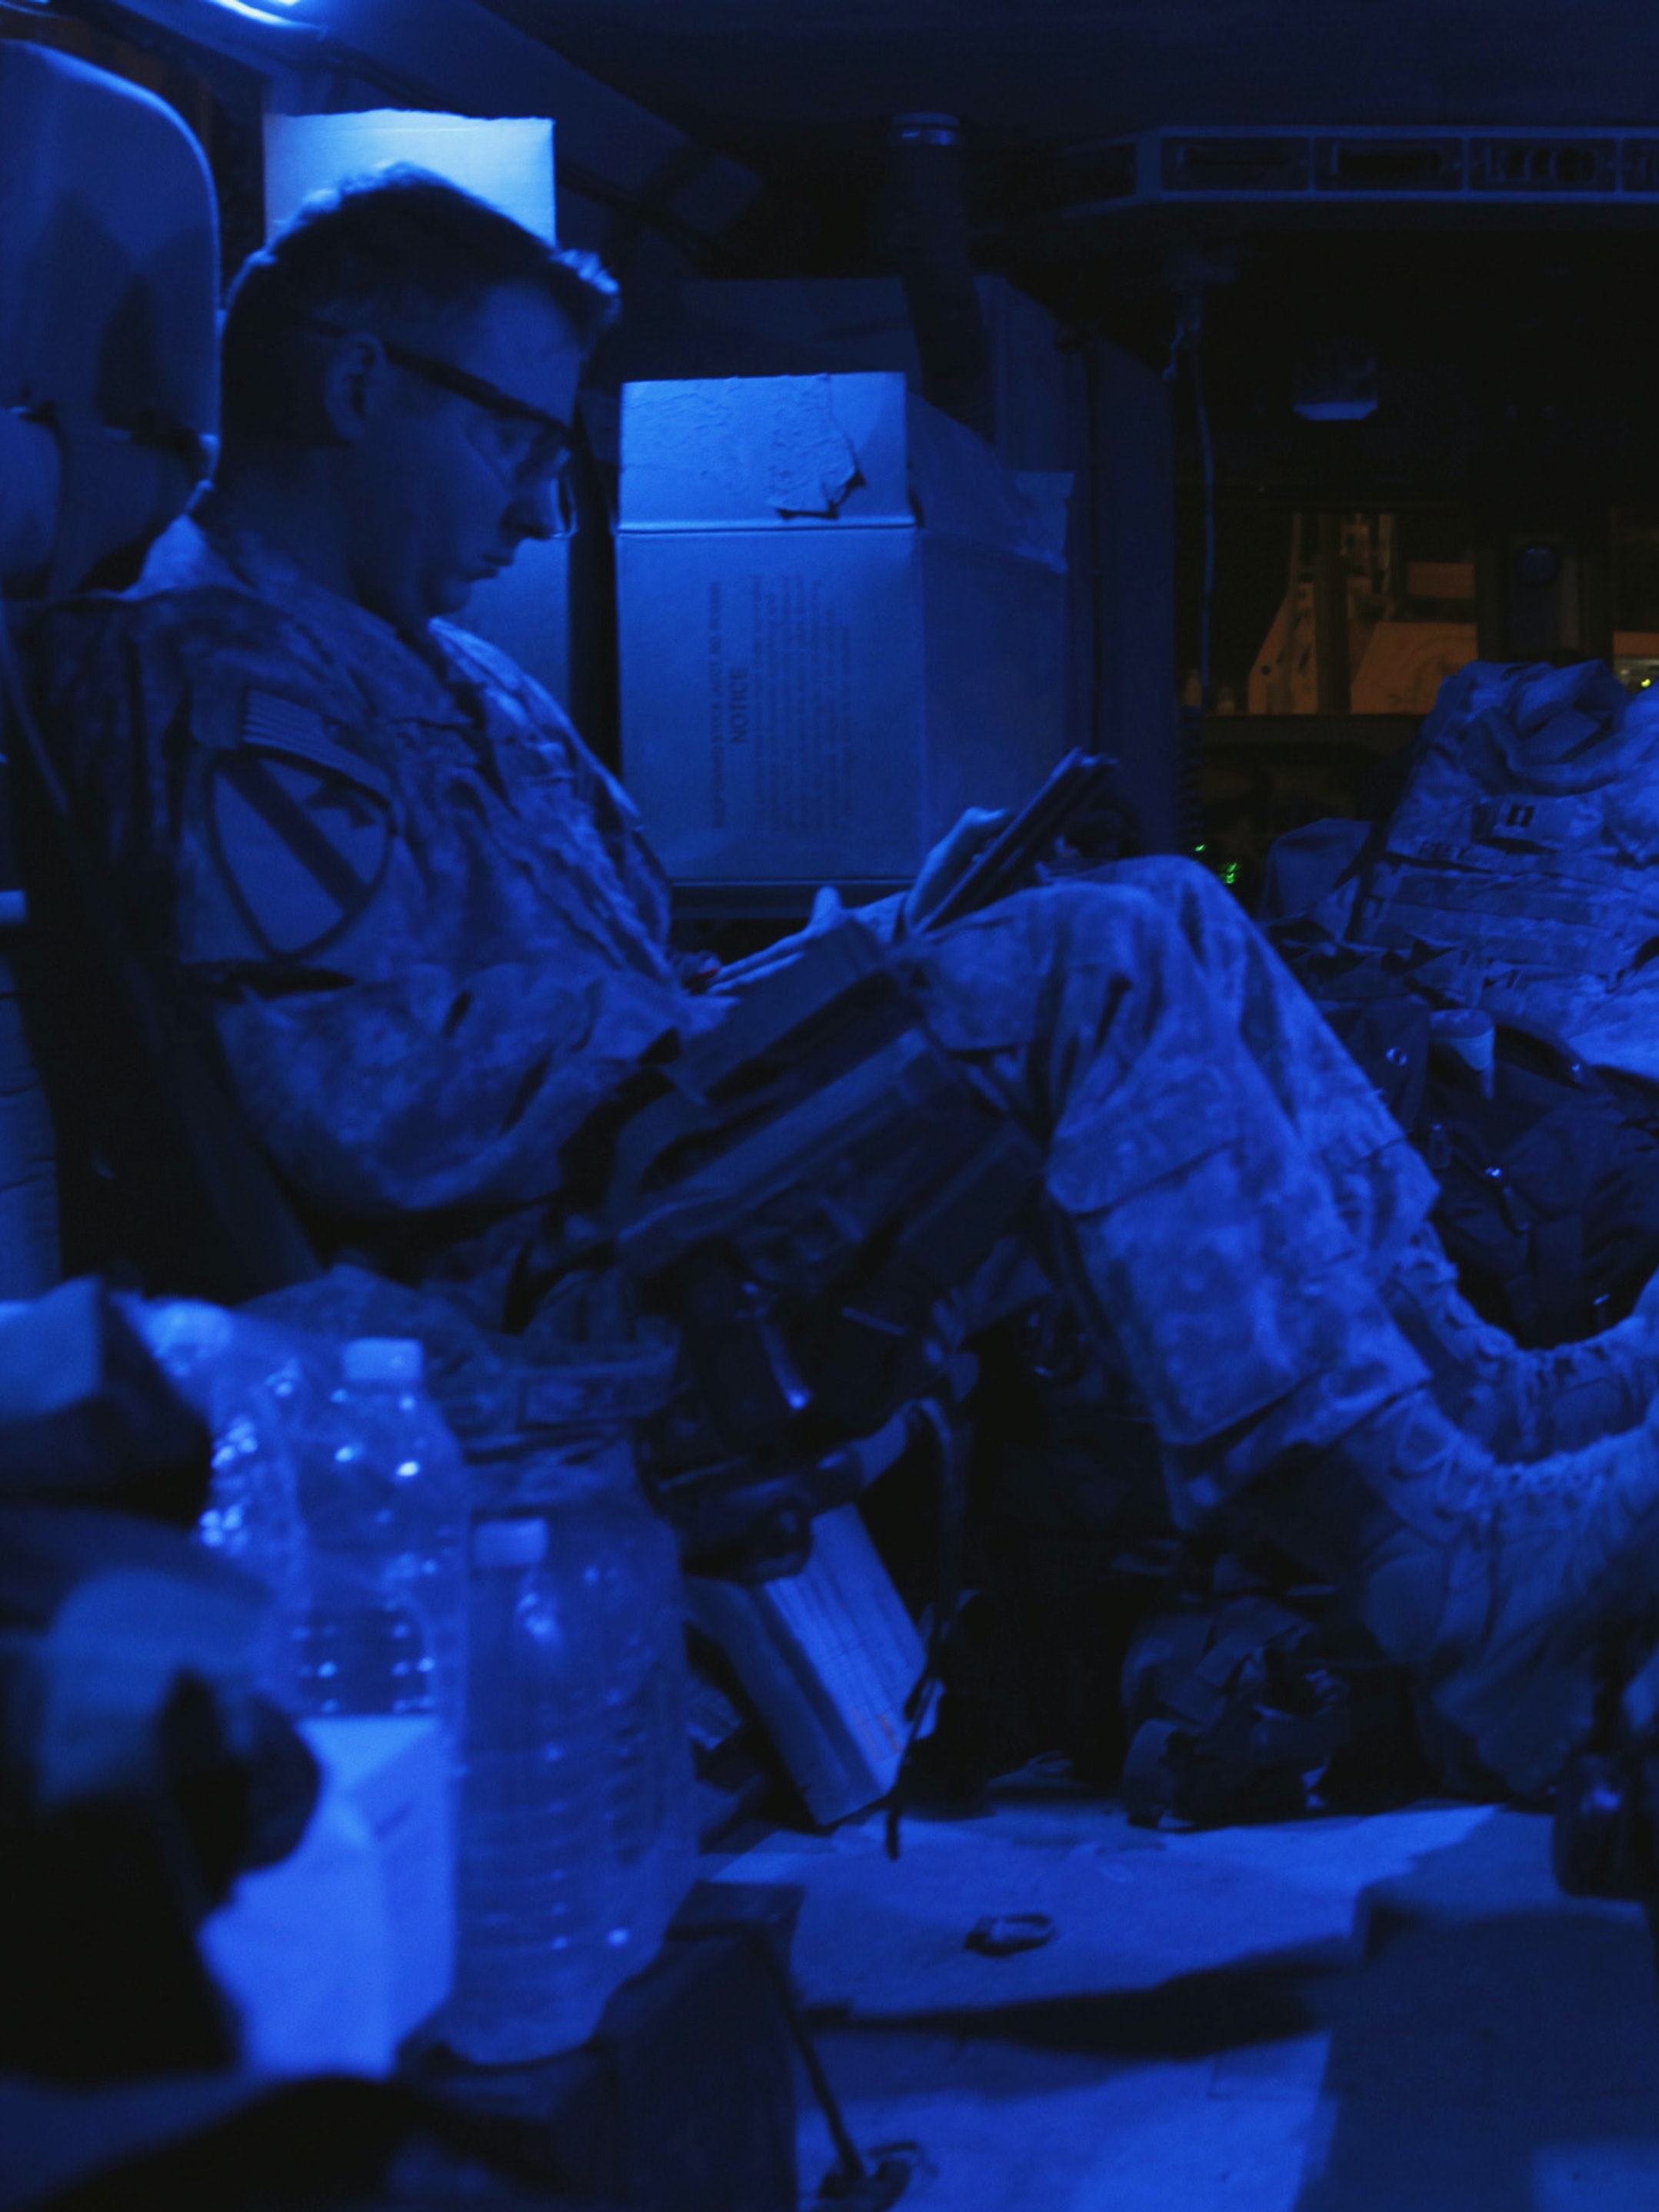 Captain Chris Prange of the 3rd Brigade Combat Team, 1st Cavalry Division reads a book in the back of a Mine Resistant Ambush Protected vehicle.